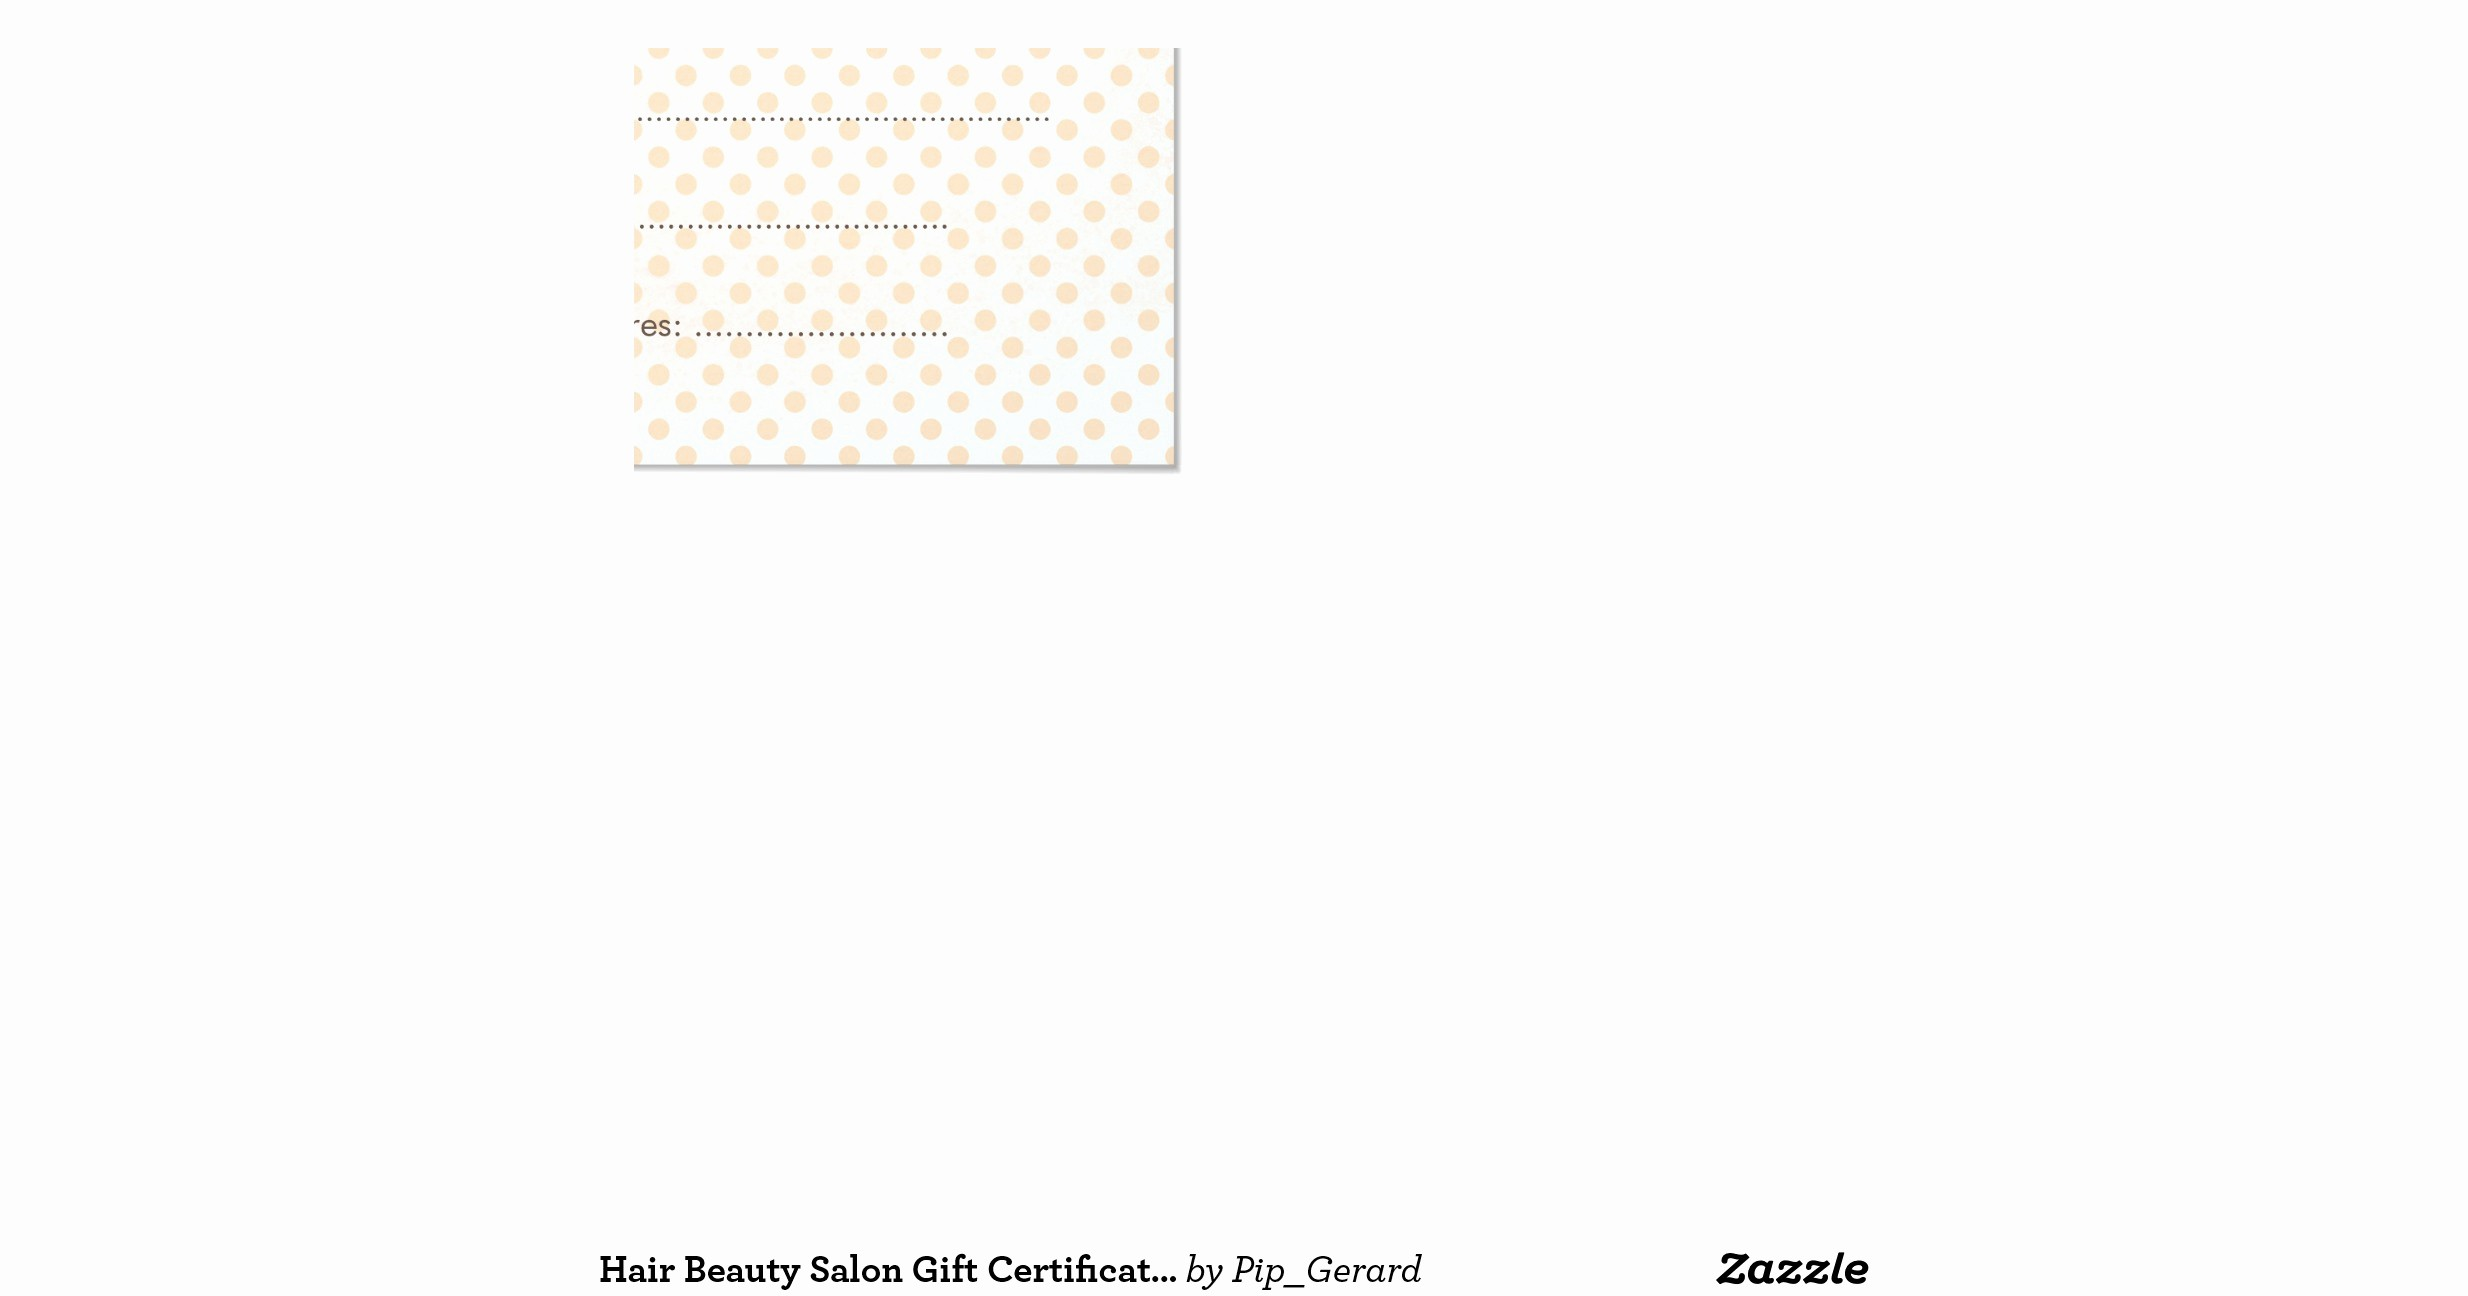 Hair Salon Gift Certificate Templates Lovely Hair Beauty Salon Gift Certificate Template 11 Cm X 14 Cm